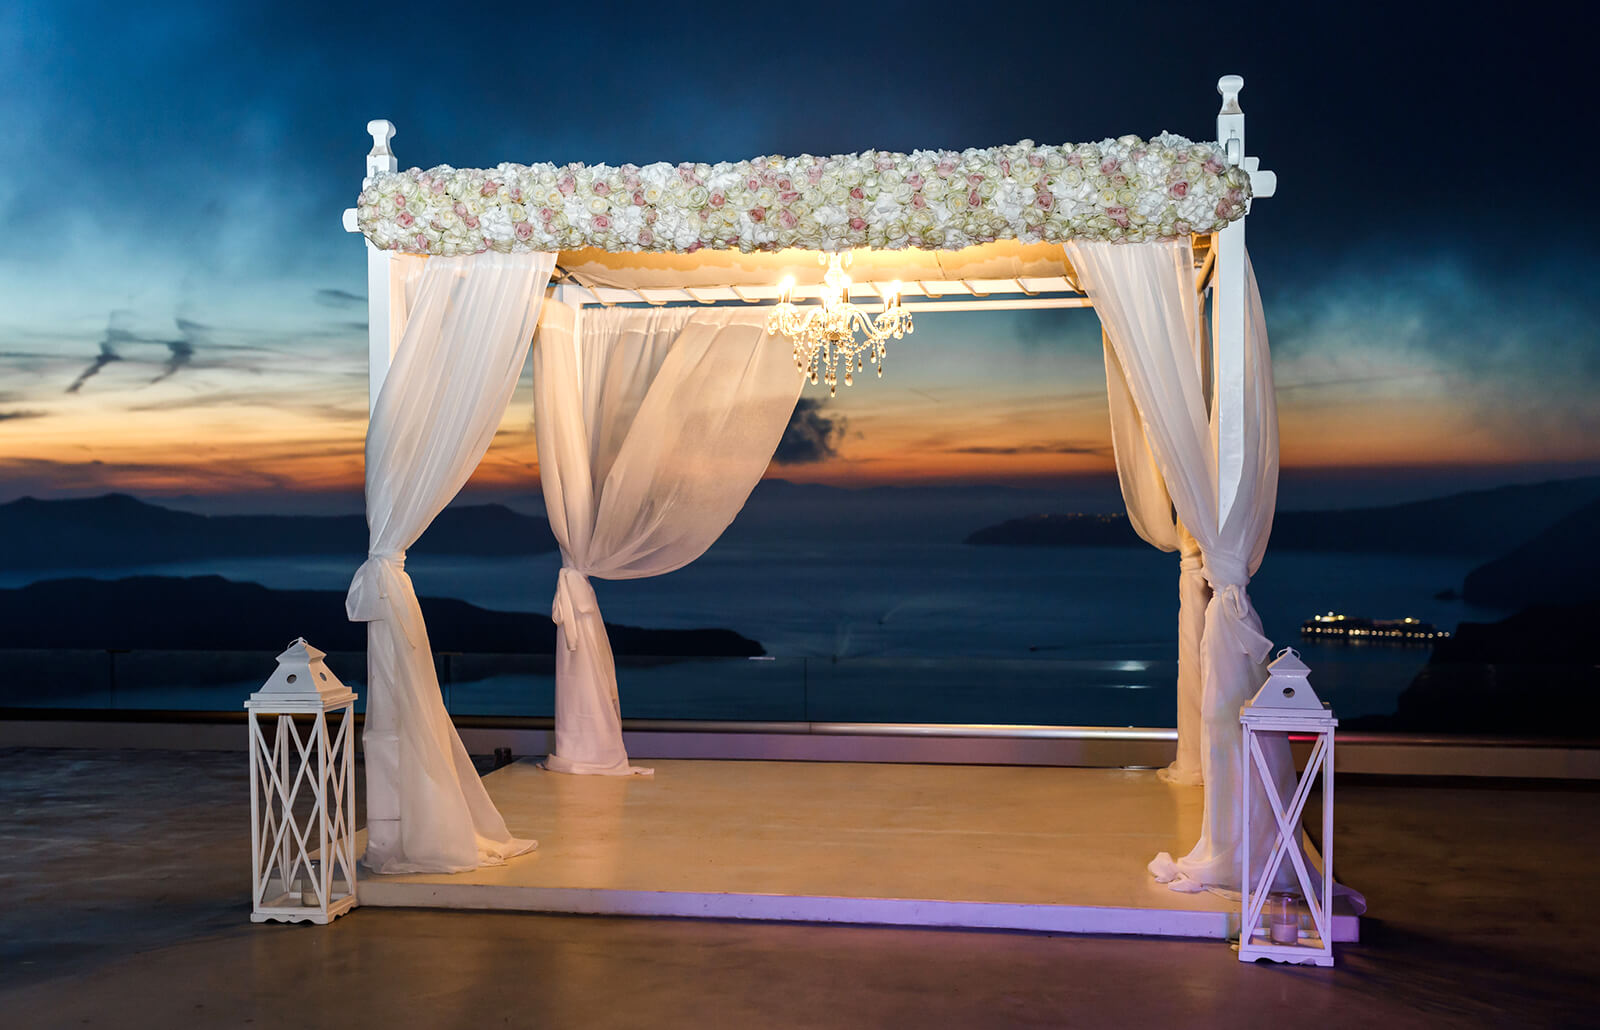 Wedding Canopy Ideas | LoveToKnow